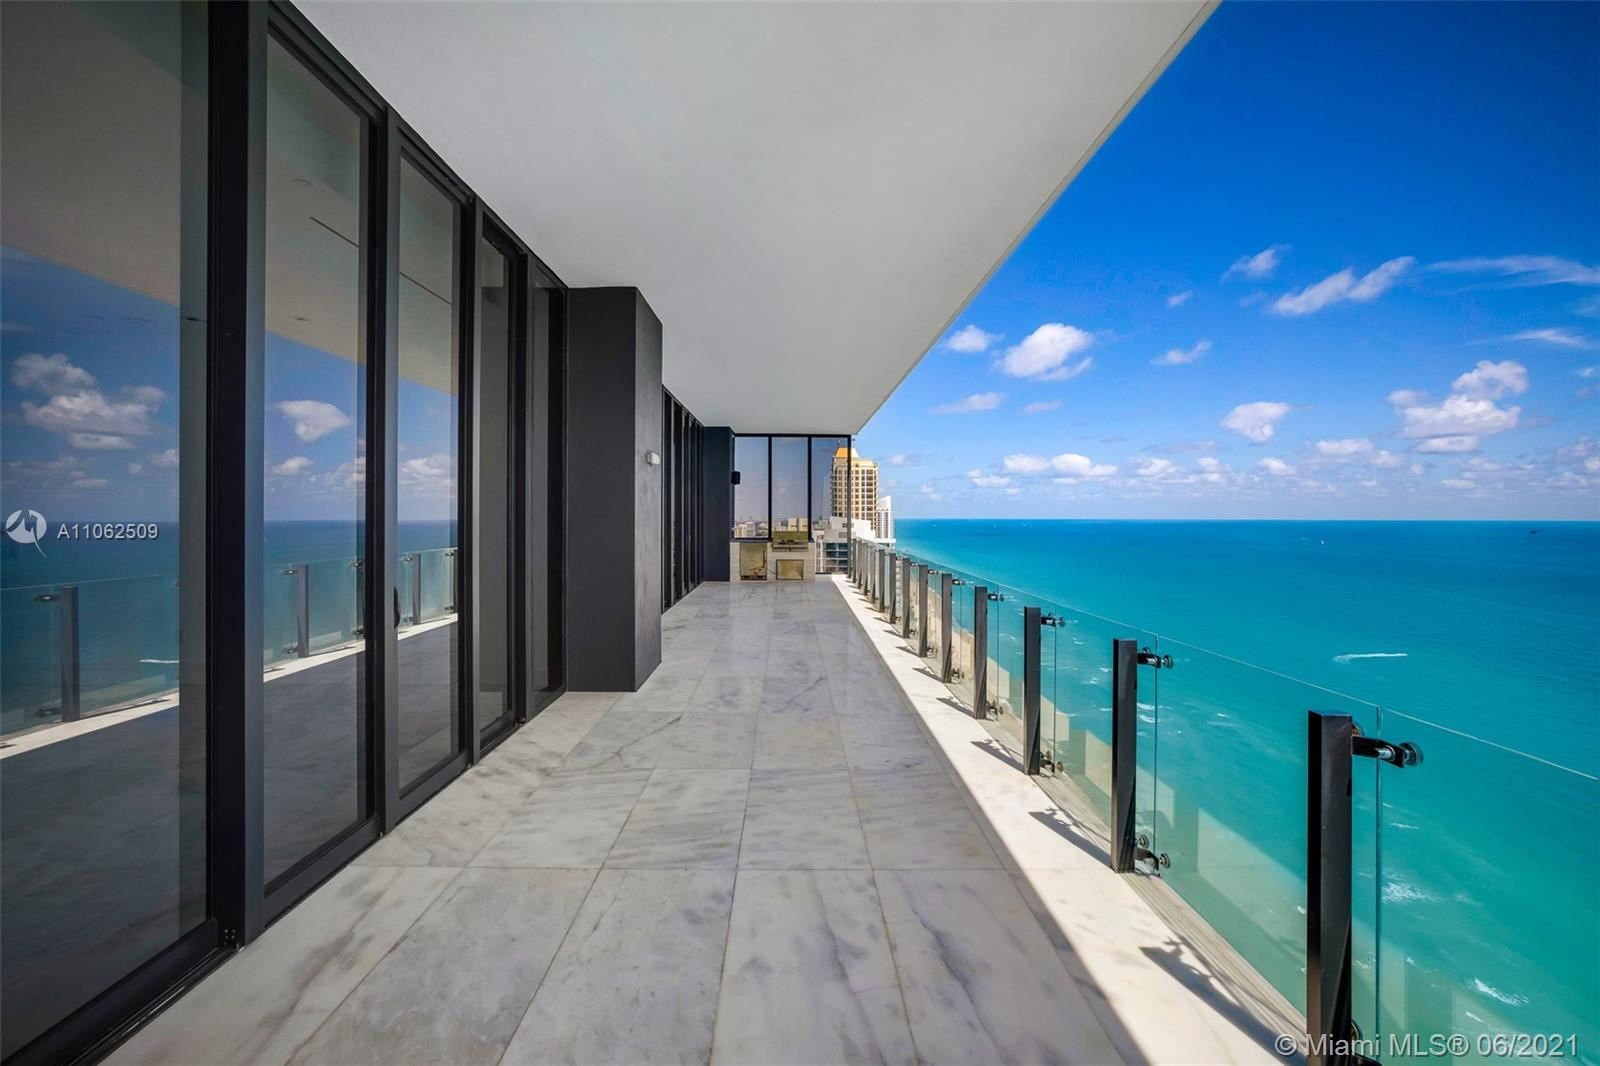 17141 Collins Ave #3401, Sunny Isles, FL 33160 - #: A11062509